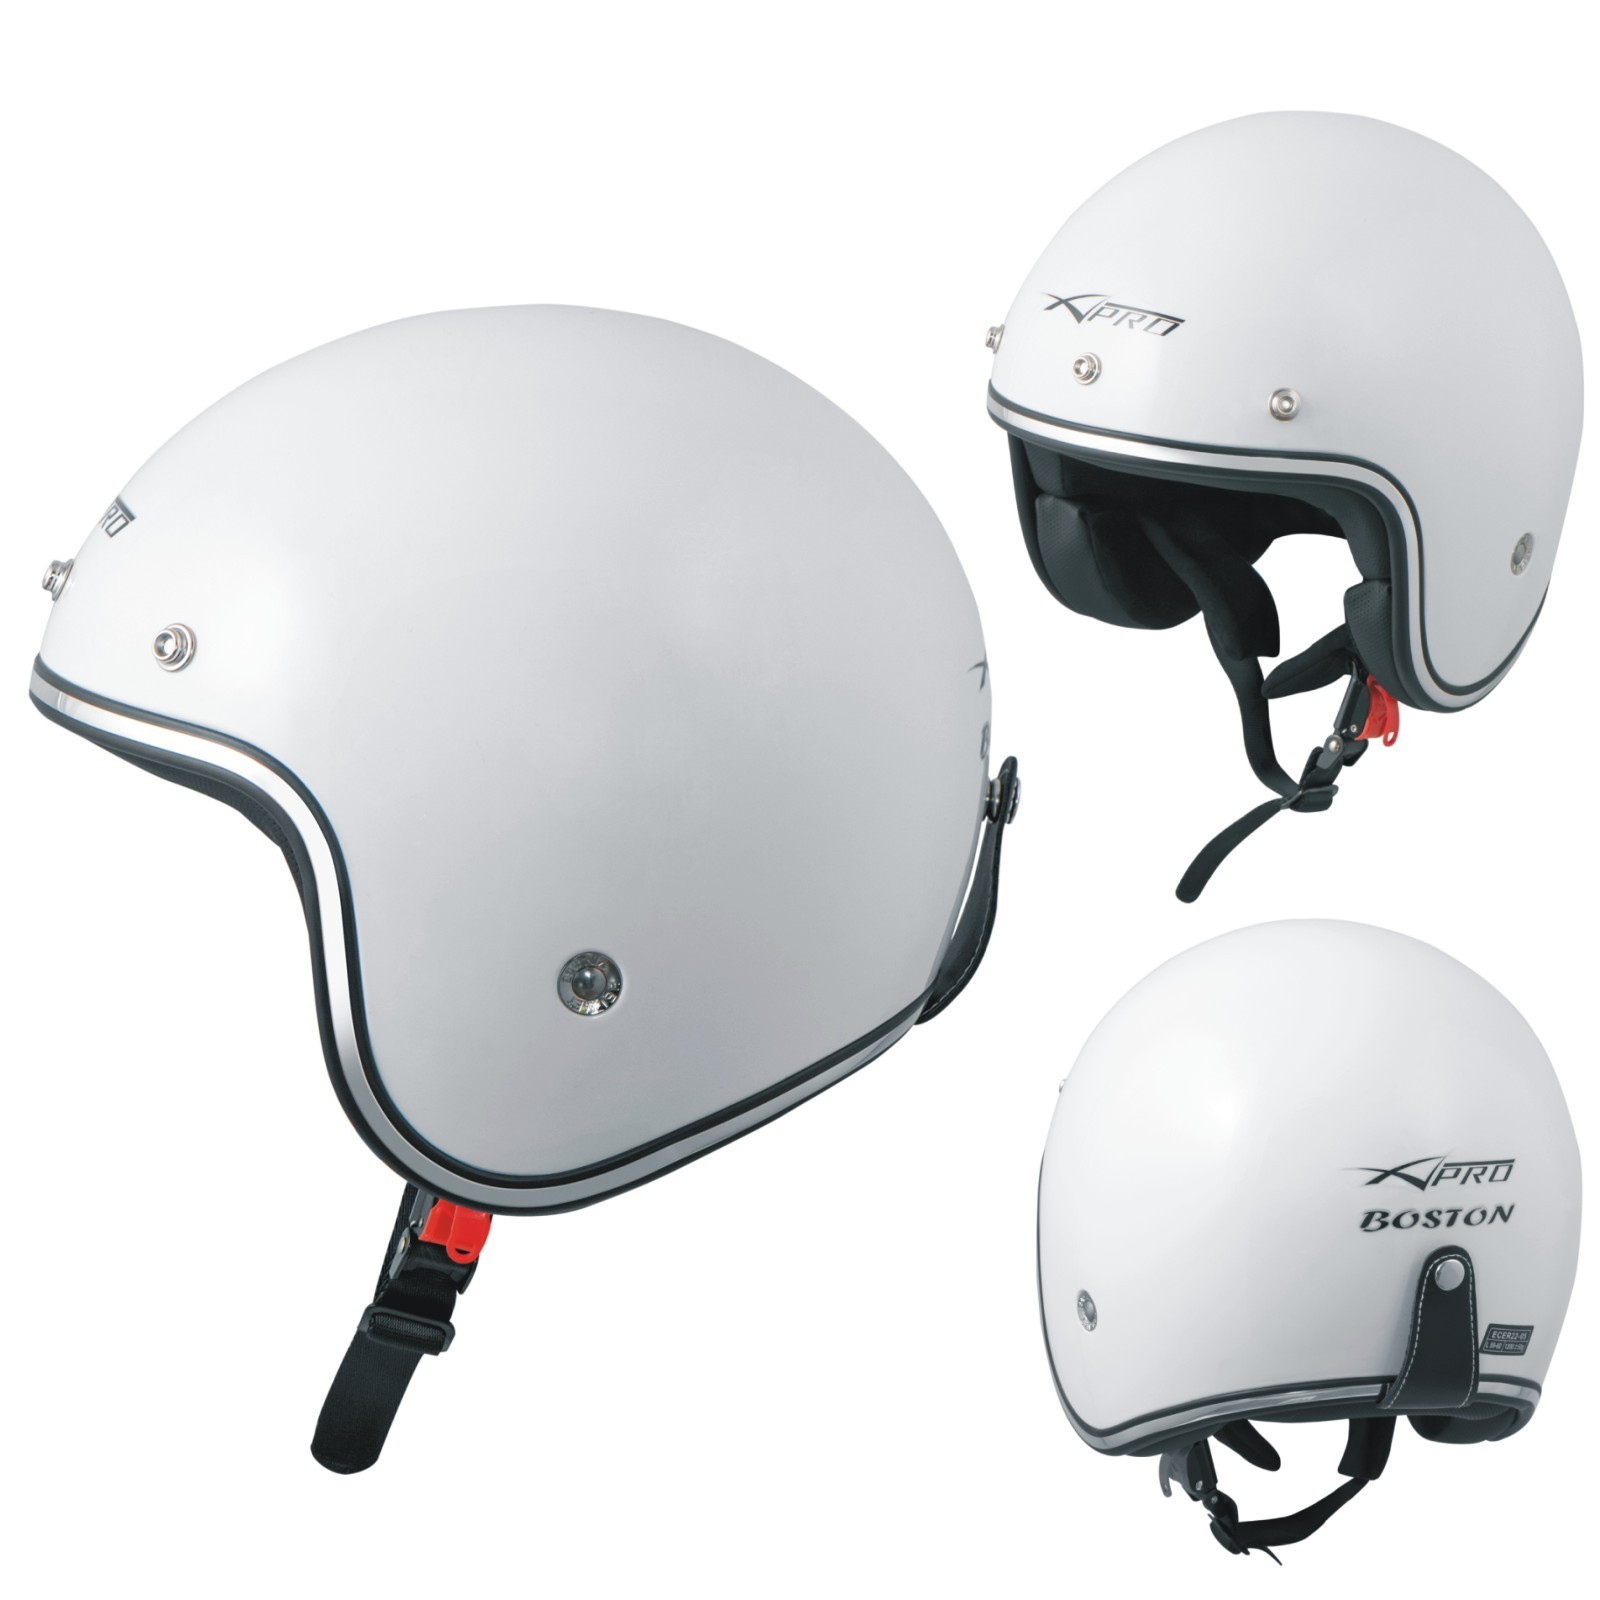 BOSTON_Casco_Helmet_Moto_Motorcycle_White_A-Pro